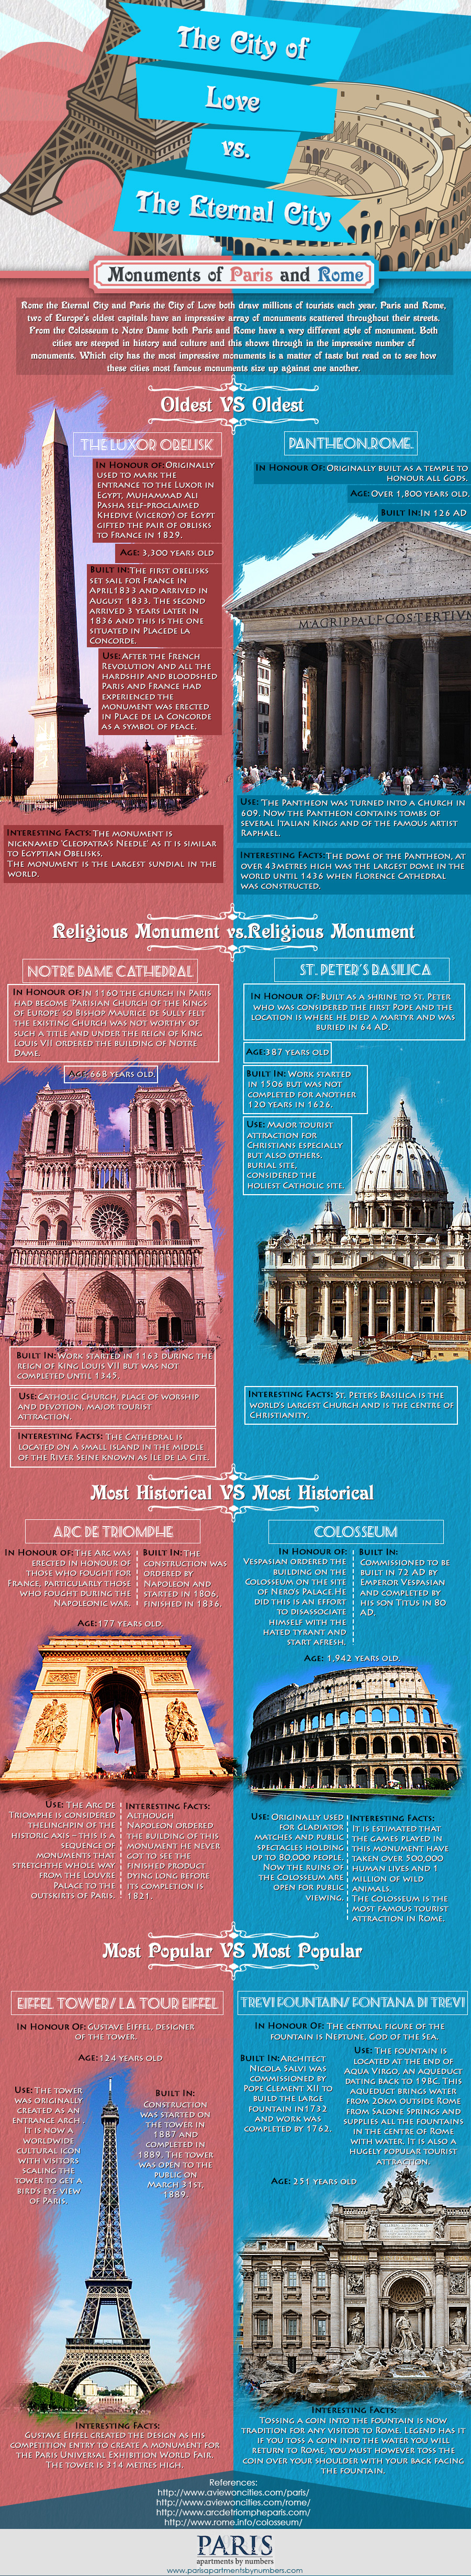 Paris vs. Rome (Infographic)